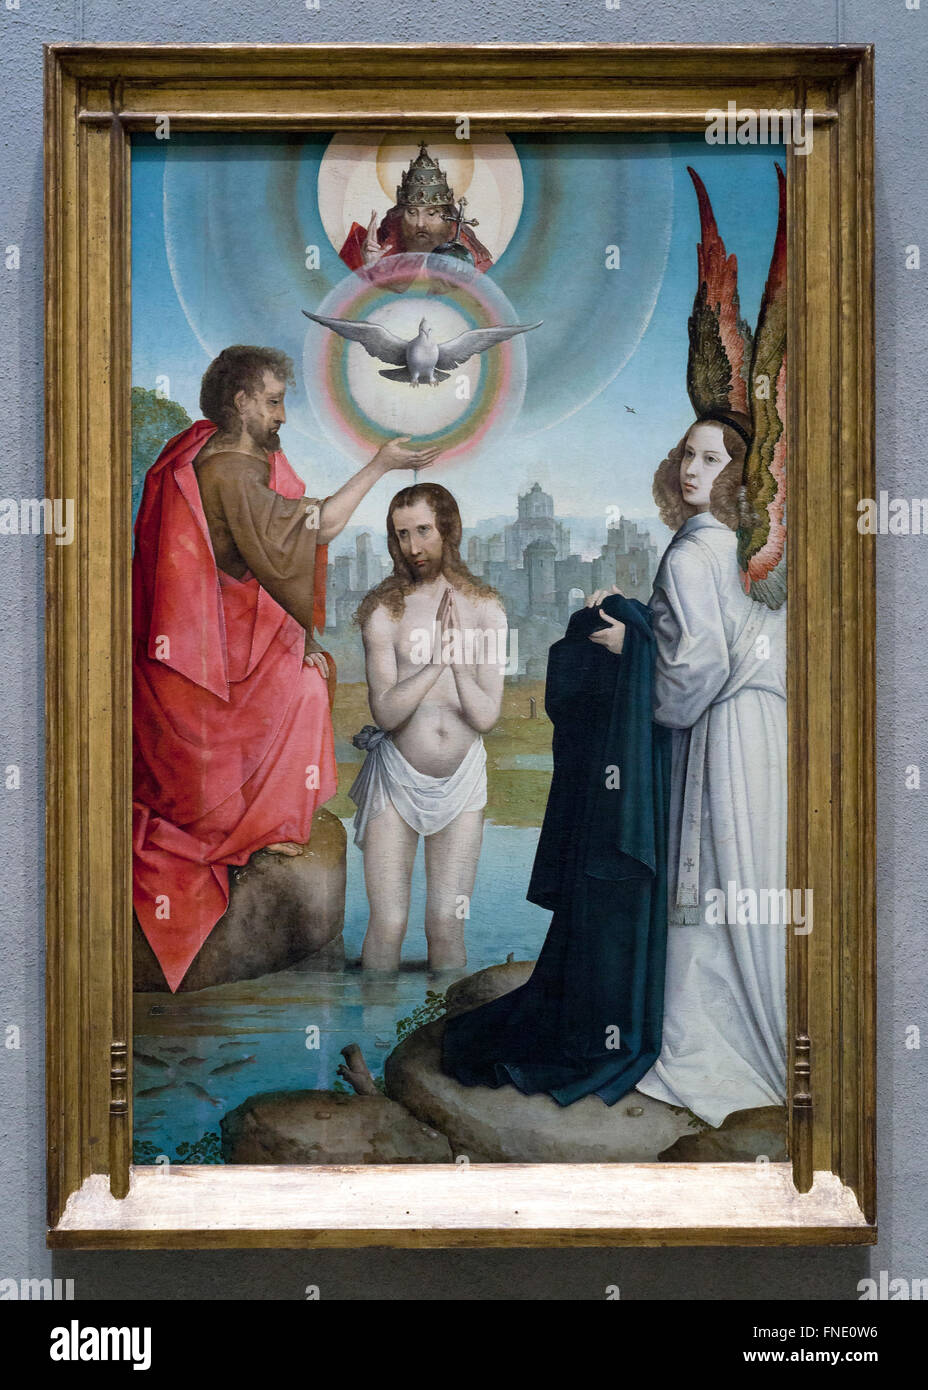 The Baptism of Christ by Juan de Flandes, circa 1508 - Smithsonian National Gallery of Art, Washington, DC USA - Stock Image